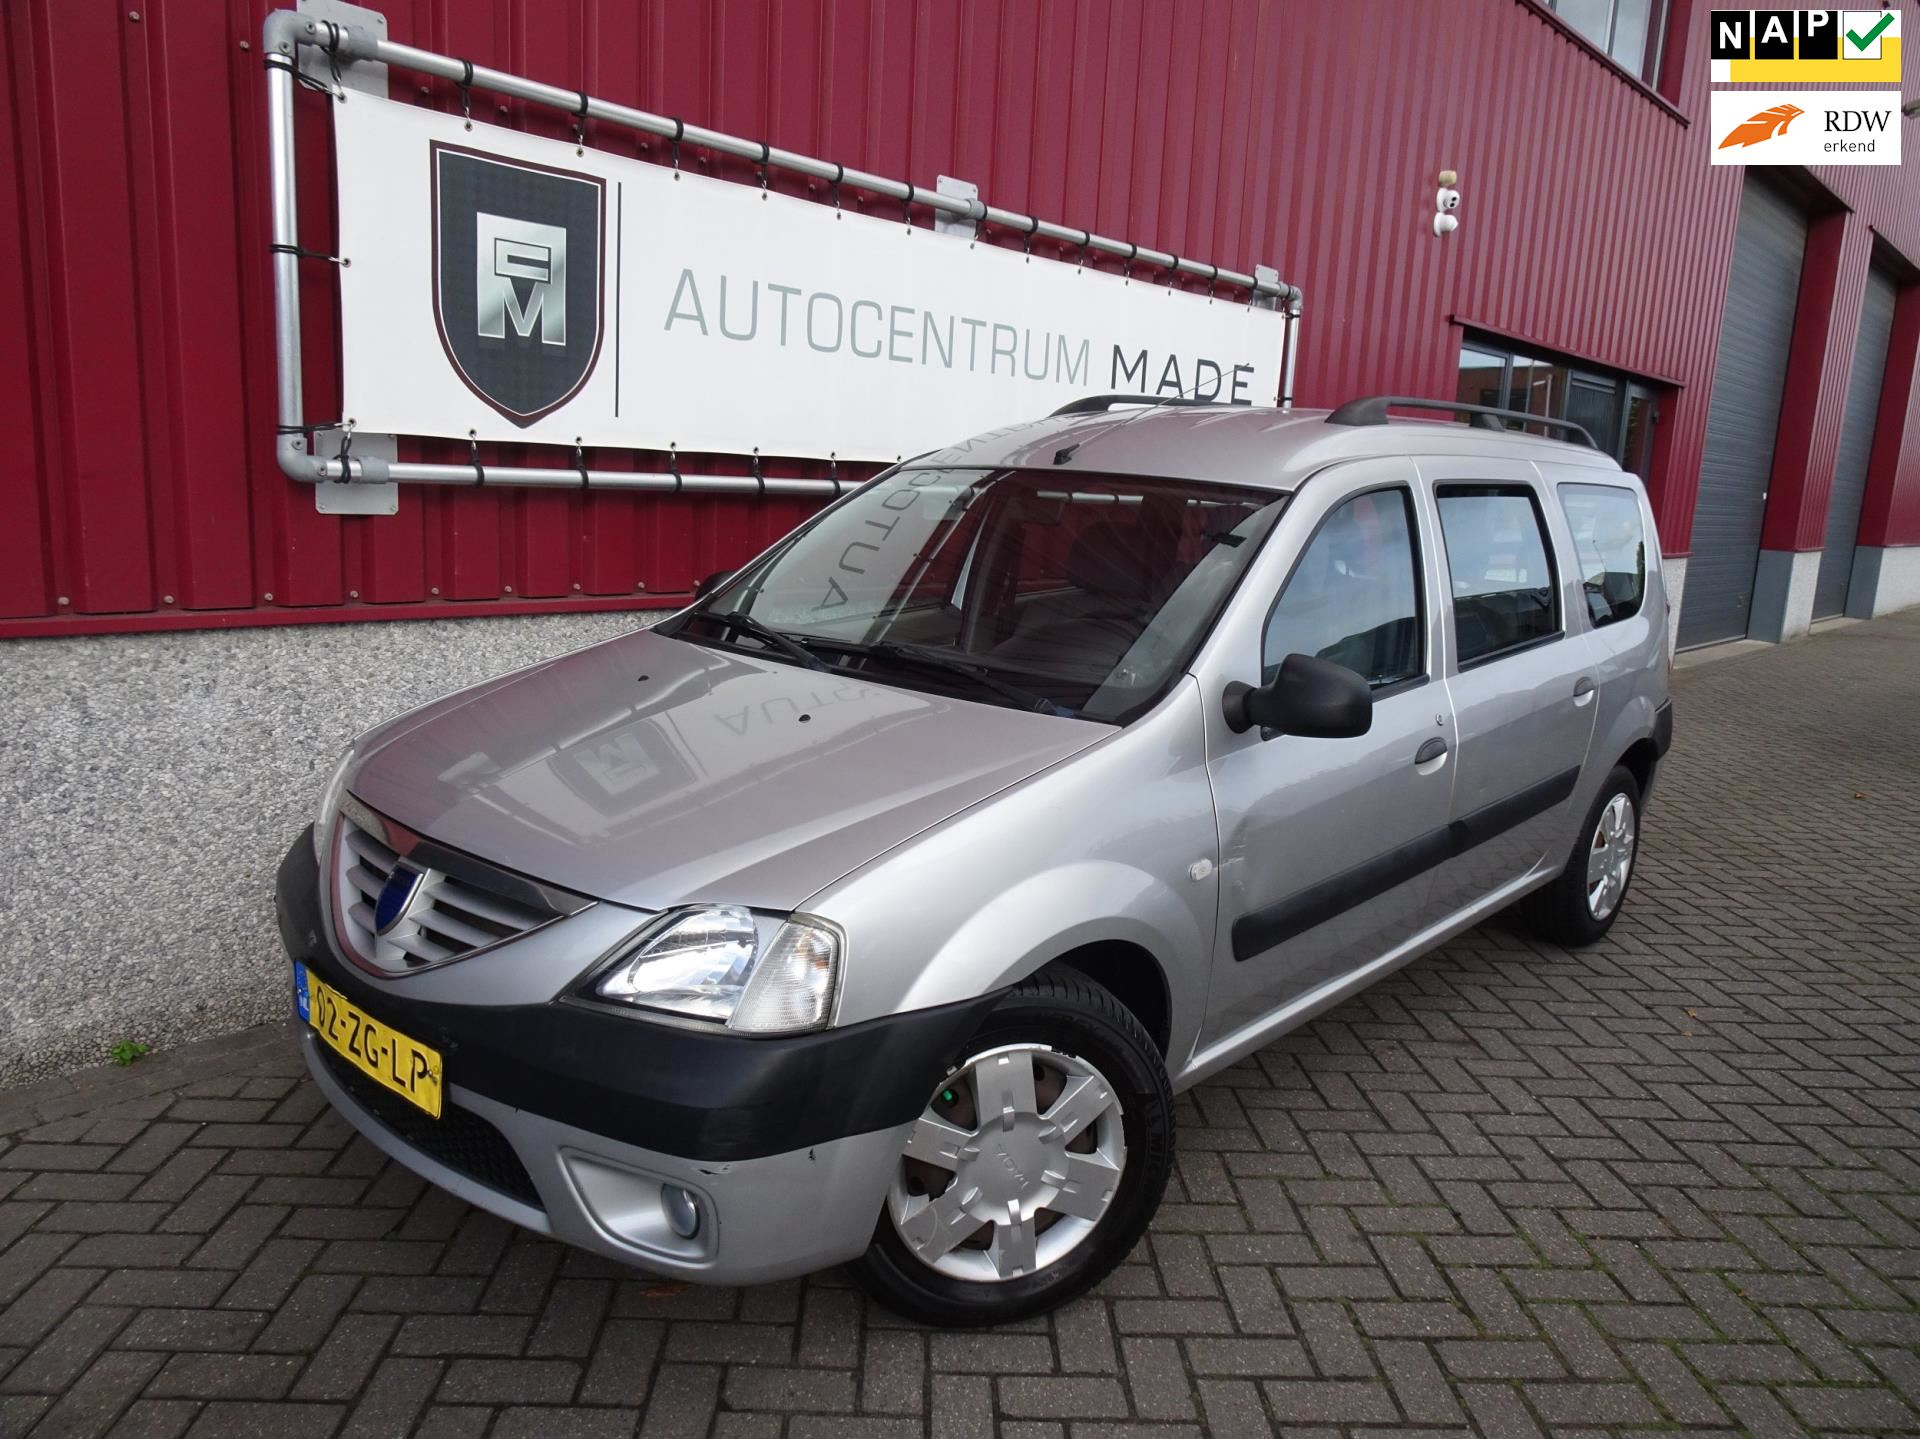 Dacia Logan MCV occasion - Auto Centrum Made